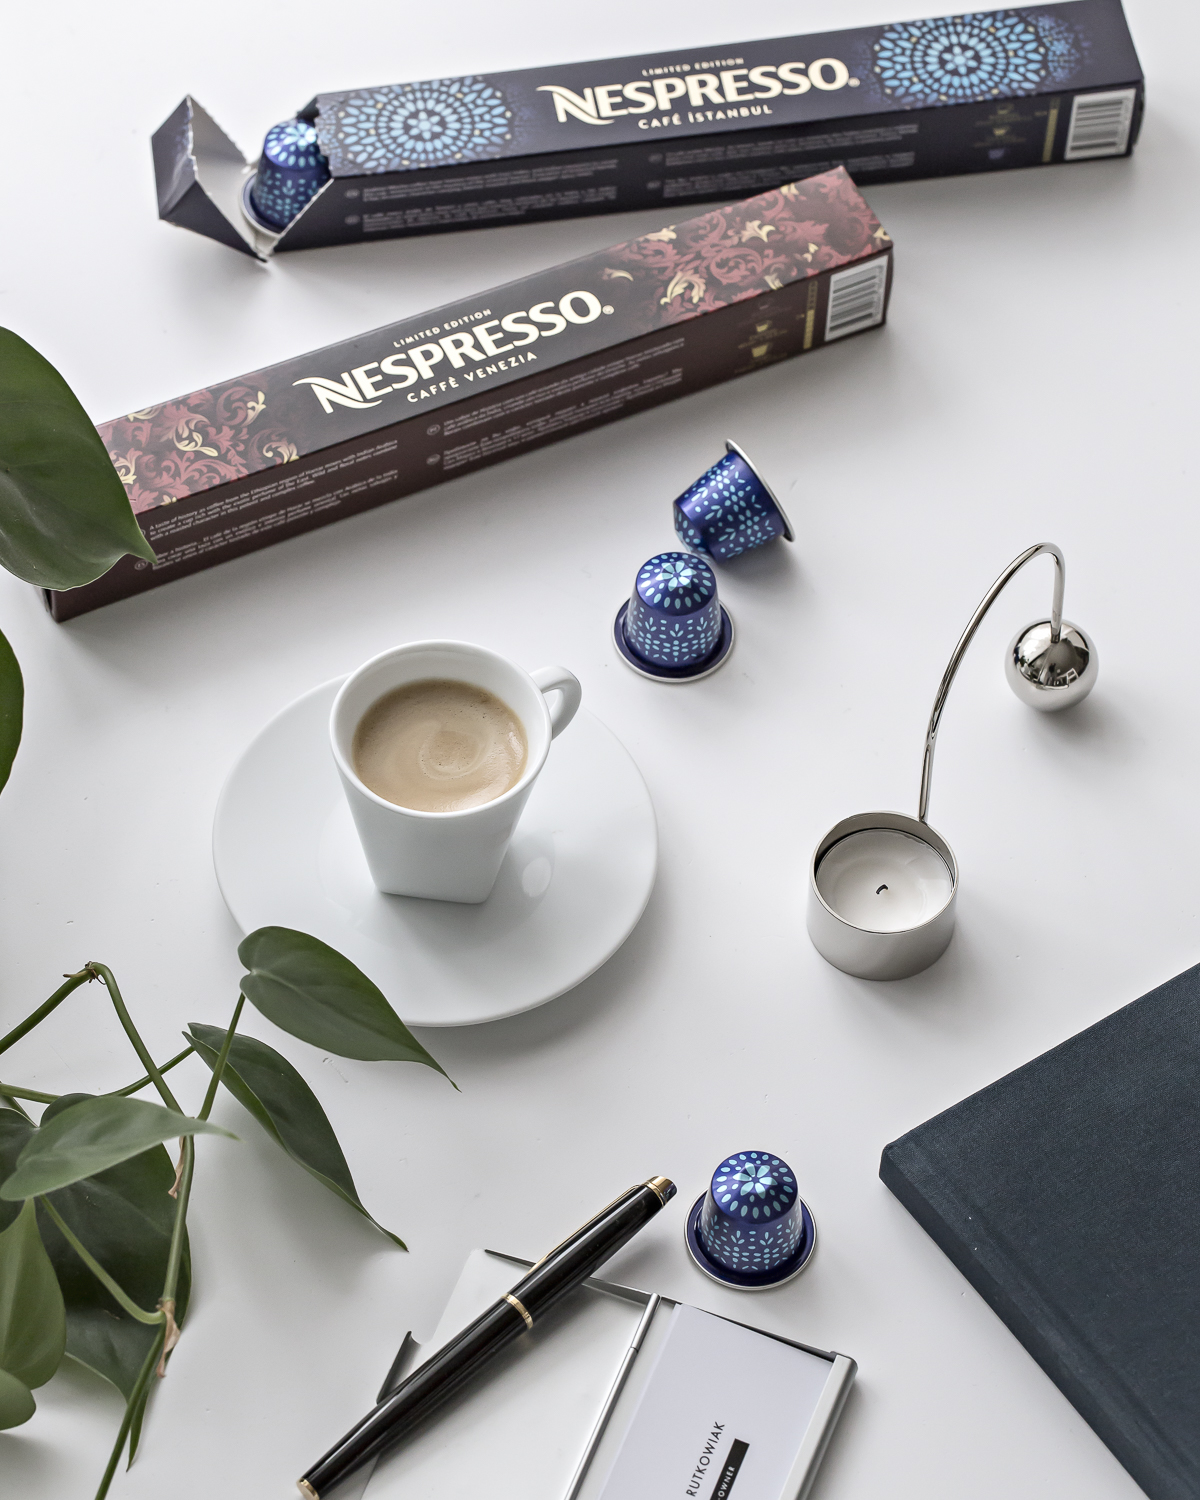 Memories brought by Nespresso Coffee Houses